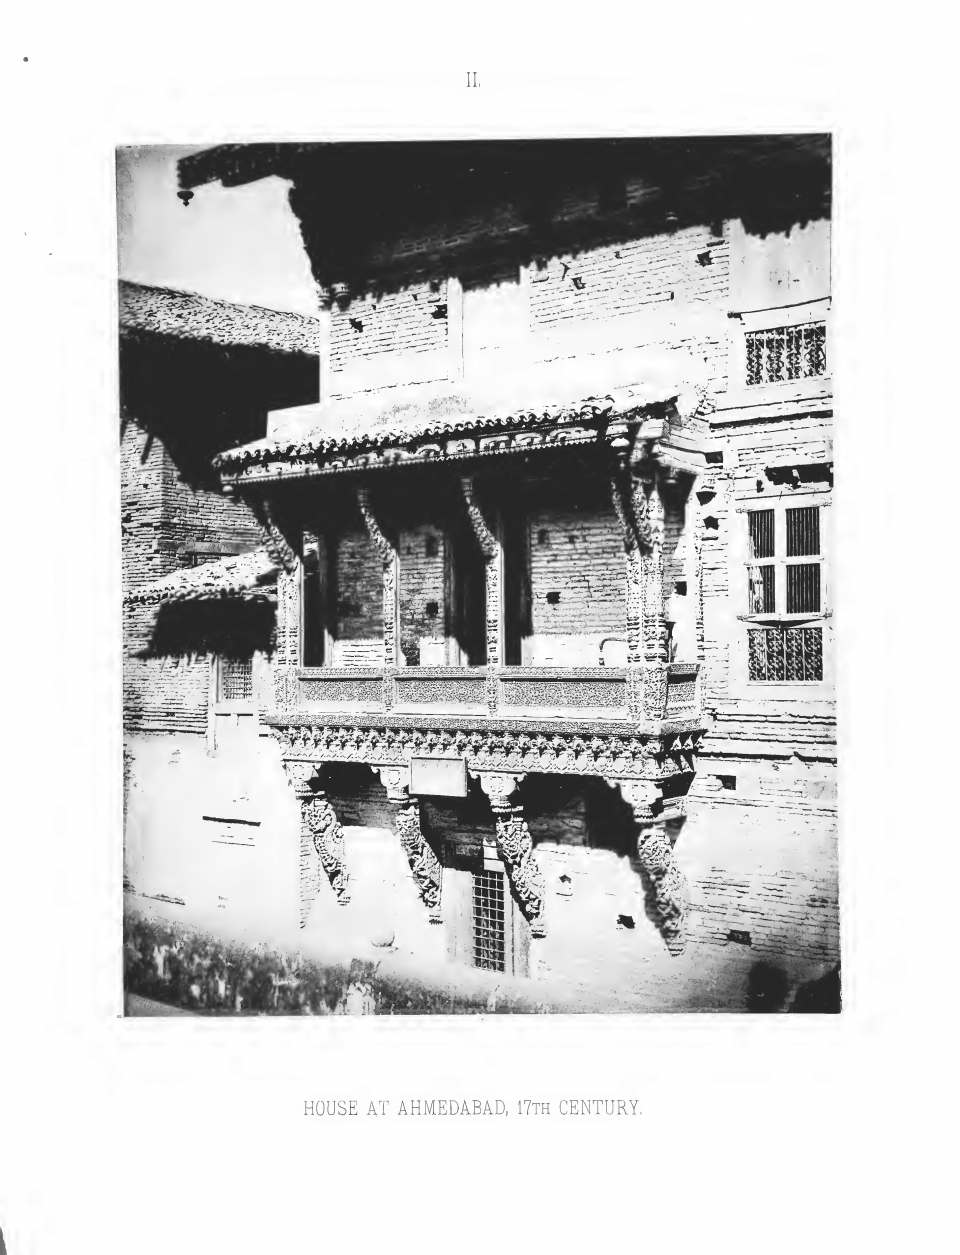 PLATE II. HOUSE AT AHMEDABAD, 17th CENTURY.